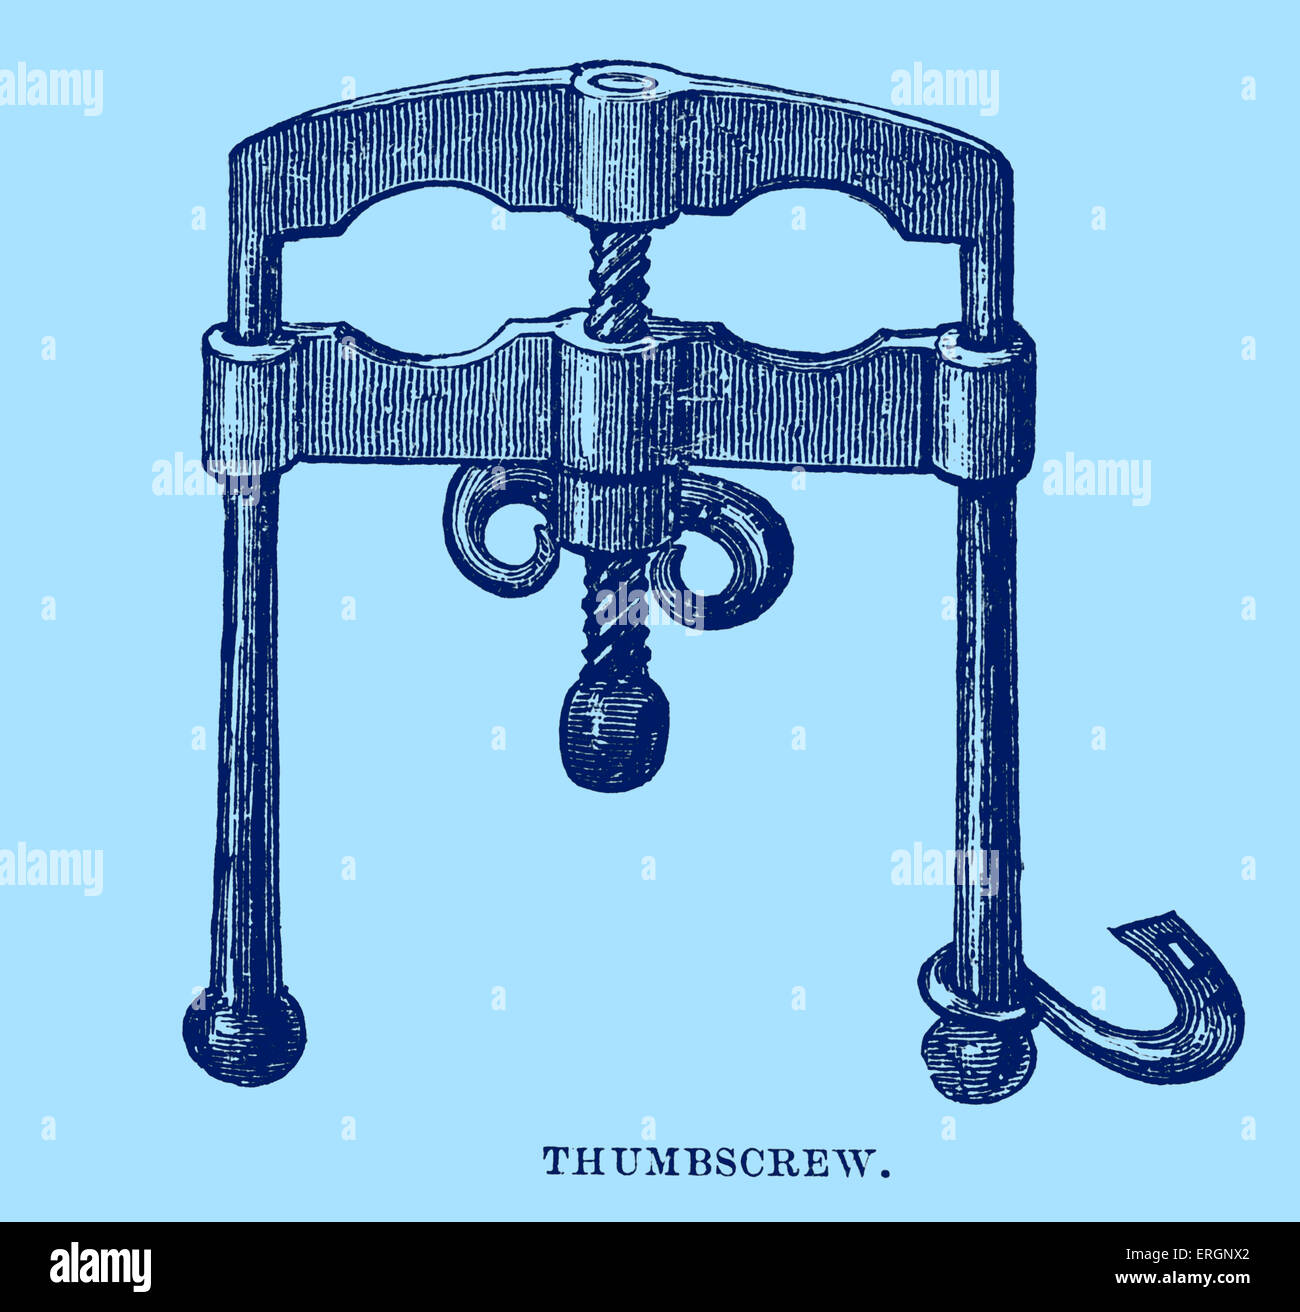 Thumbscrew, illustration - a screwed device, used for torture. 17th century. - Stock Image